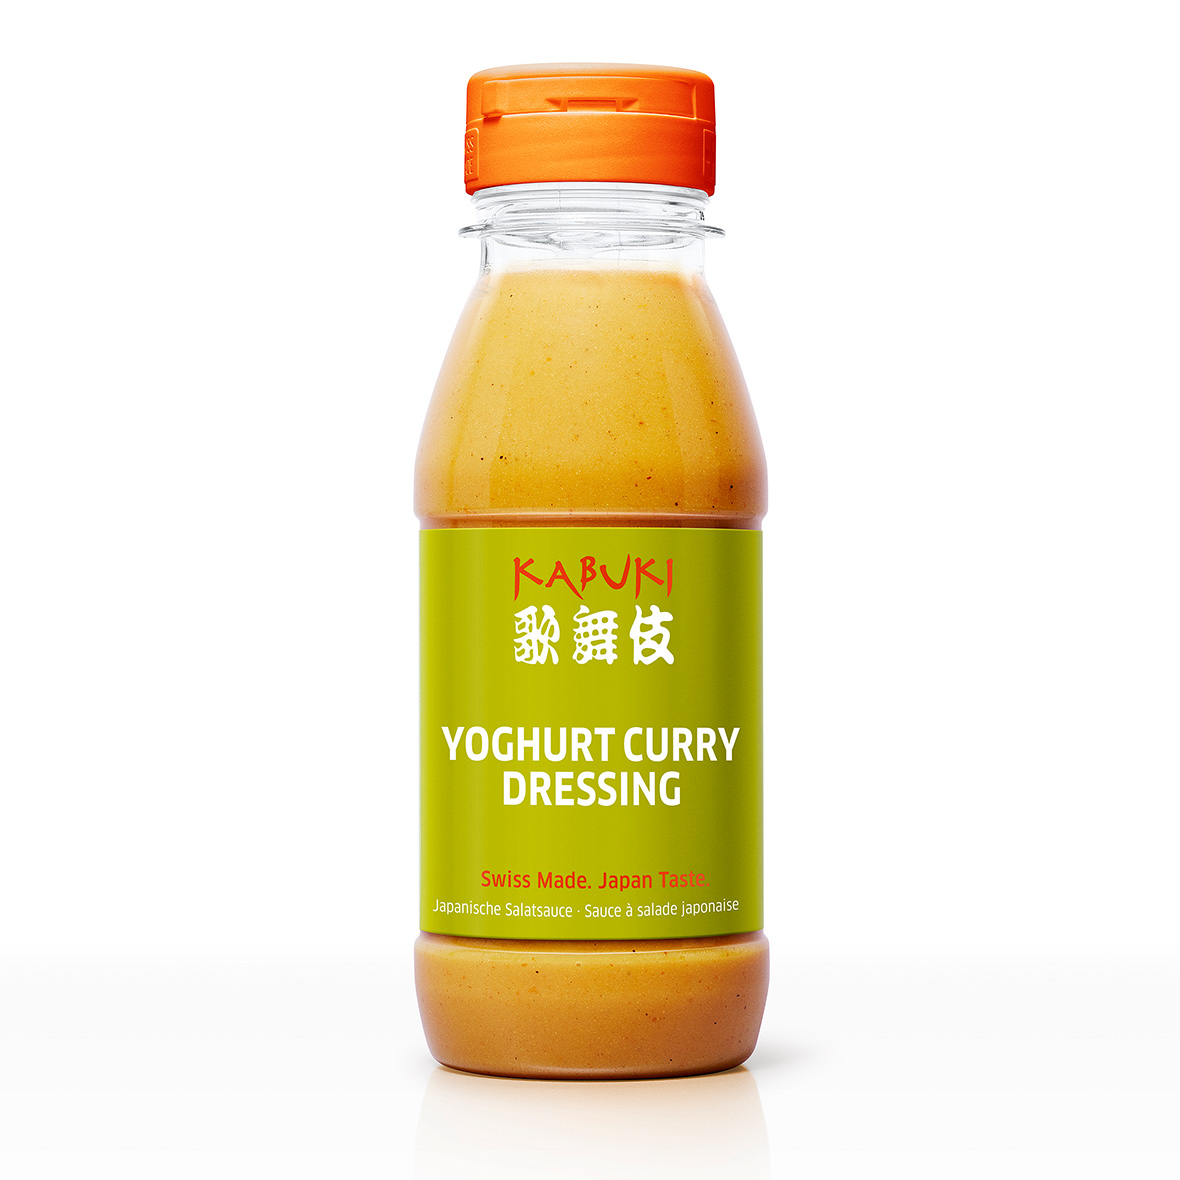 Kabuki Yoghurt Curry Dressing, 270 ml